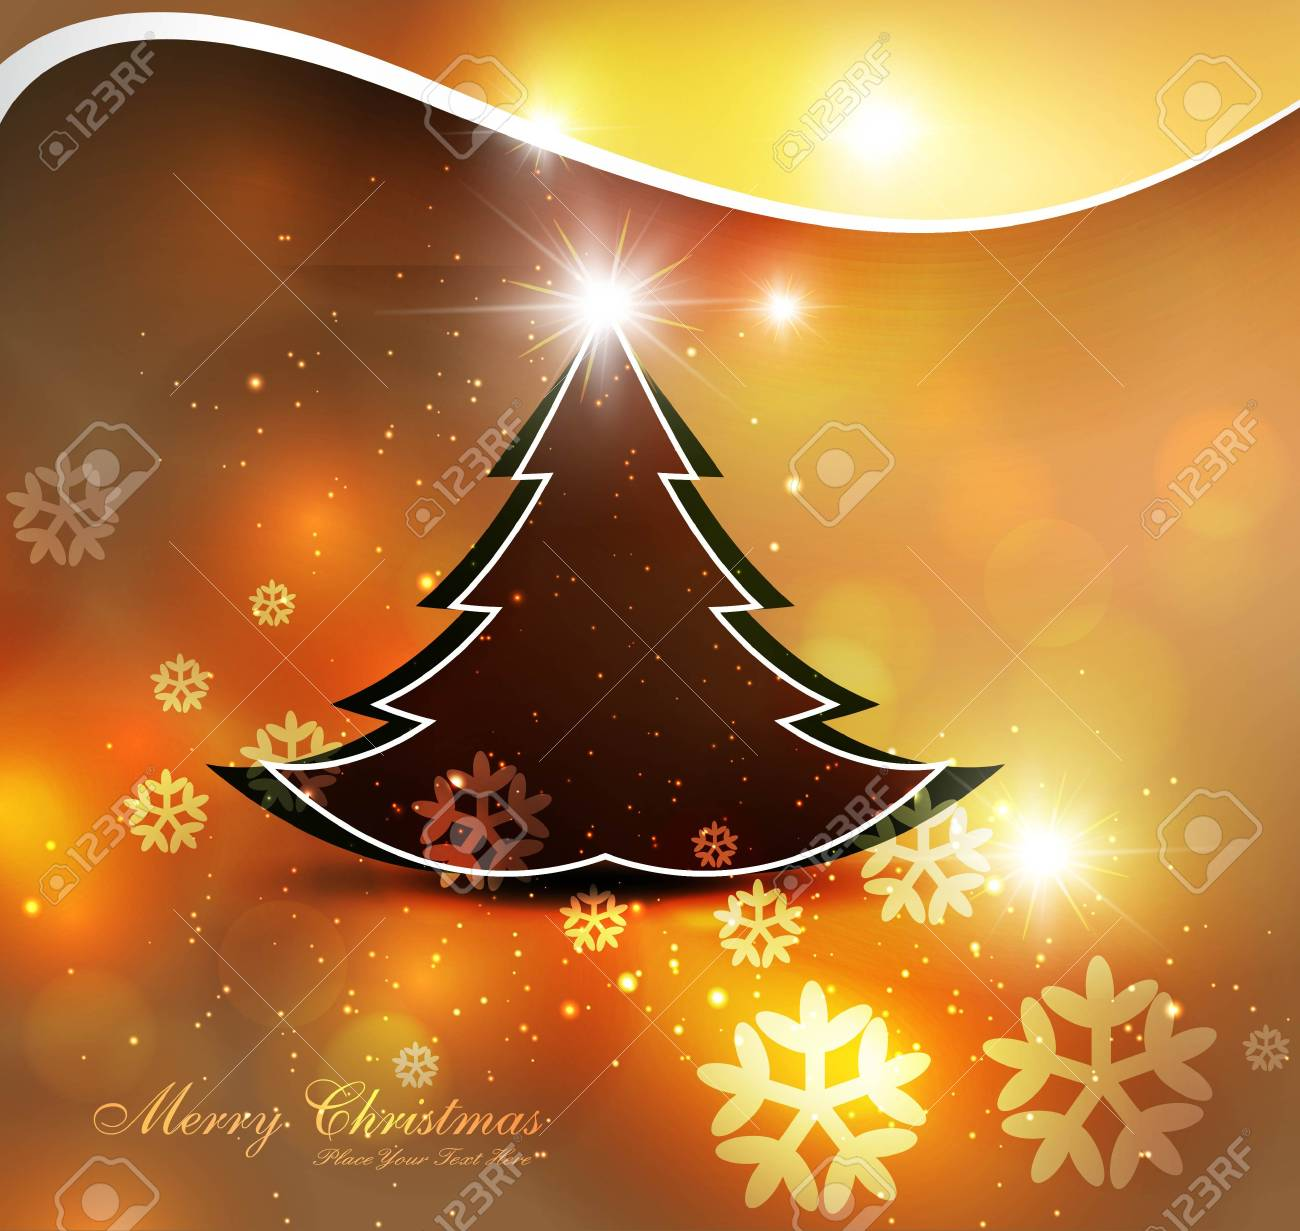 Merry Christmas bright colorful tree background card design Stock Vector - 17790343